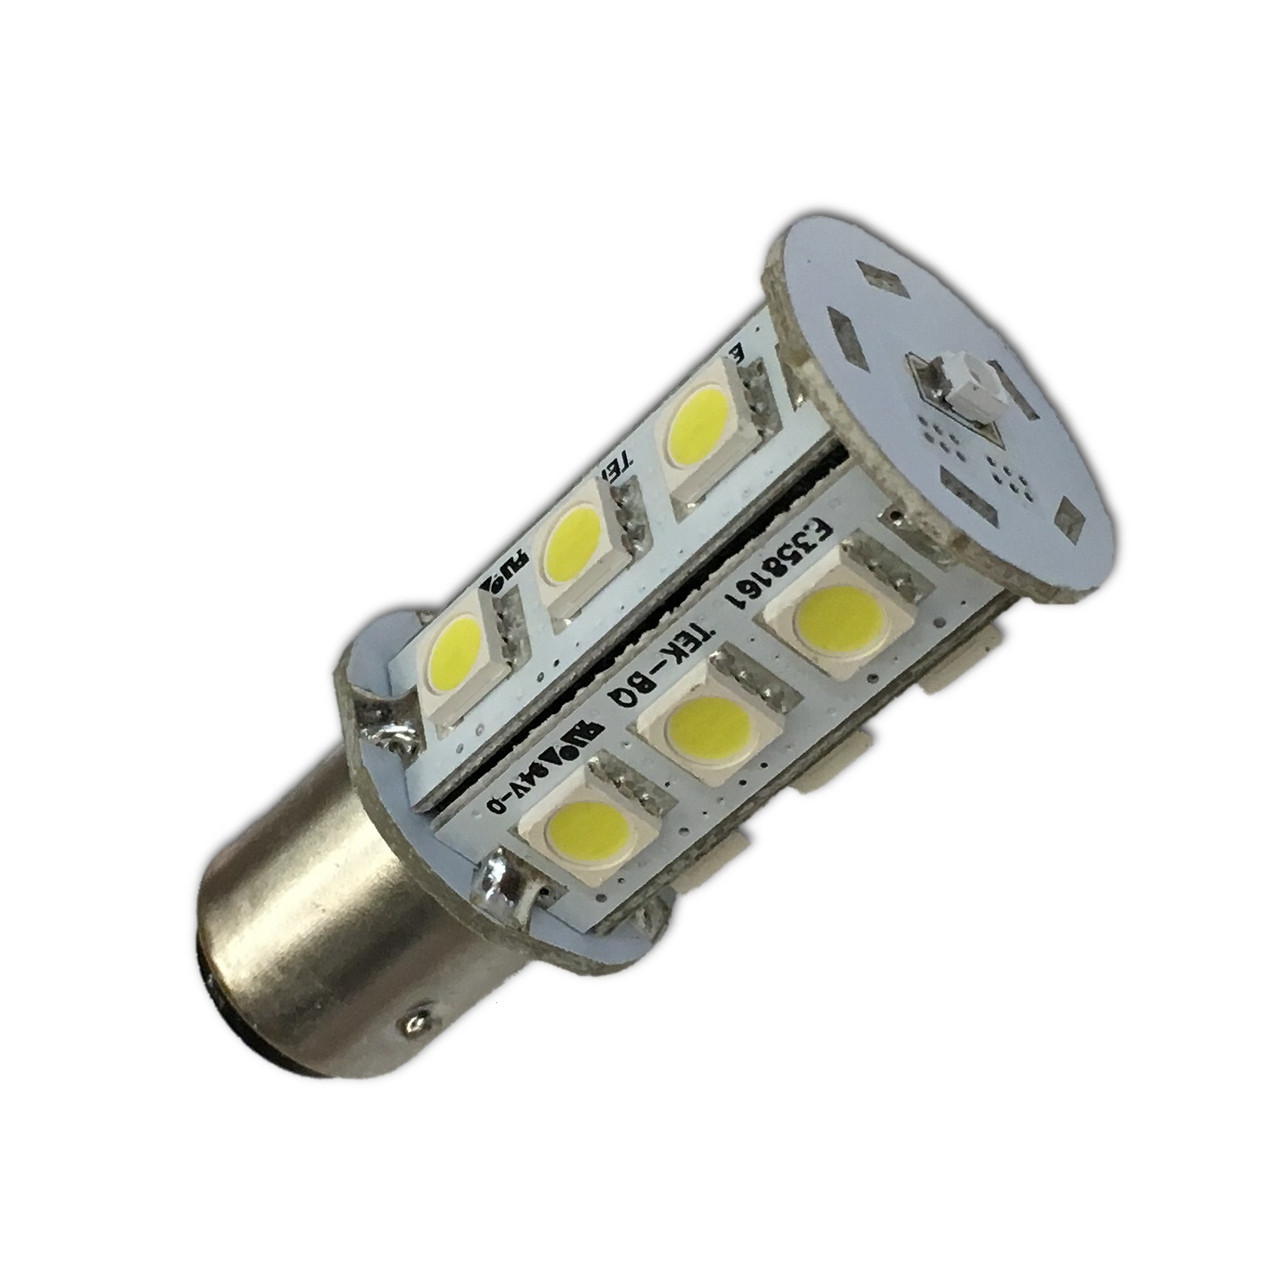 medium resolution of dusk to dawn photocell automatic anchor light led replacement bulb